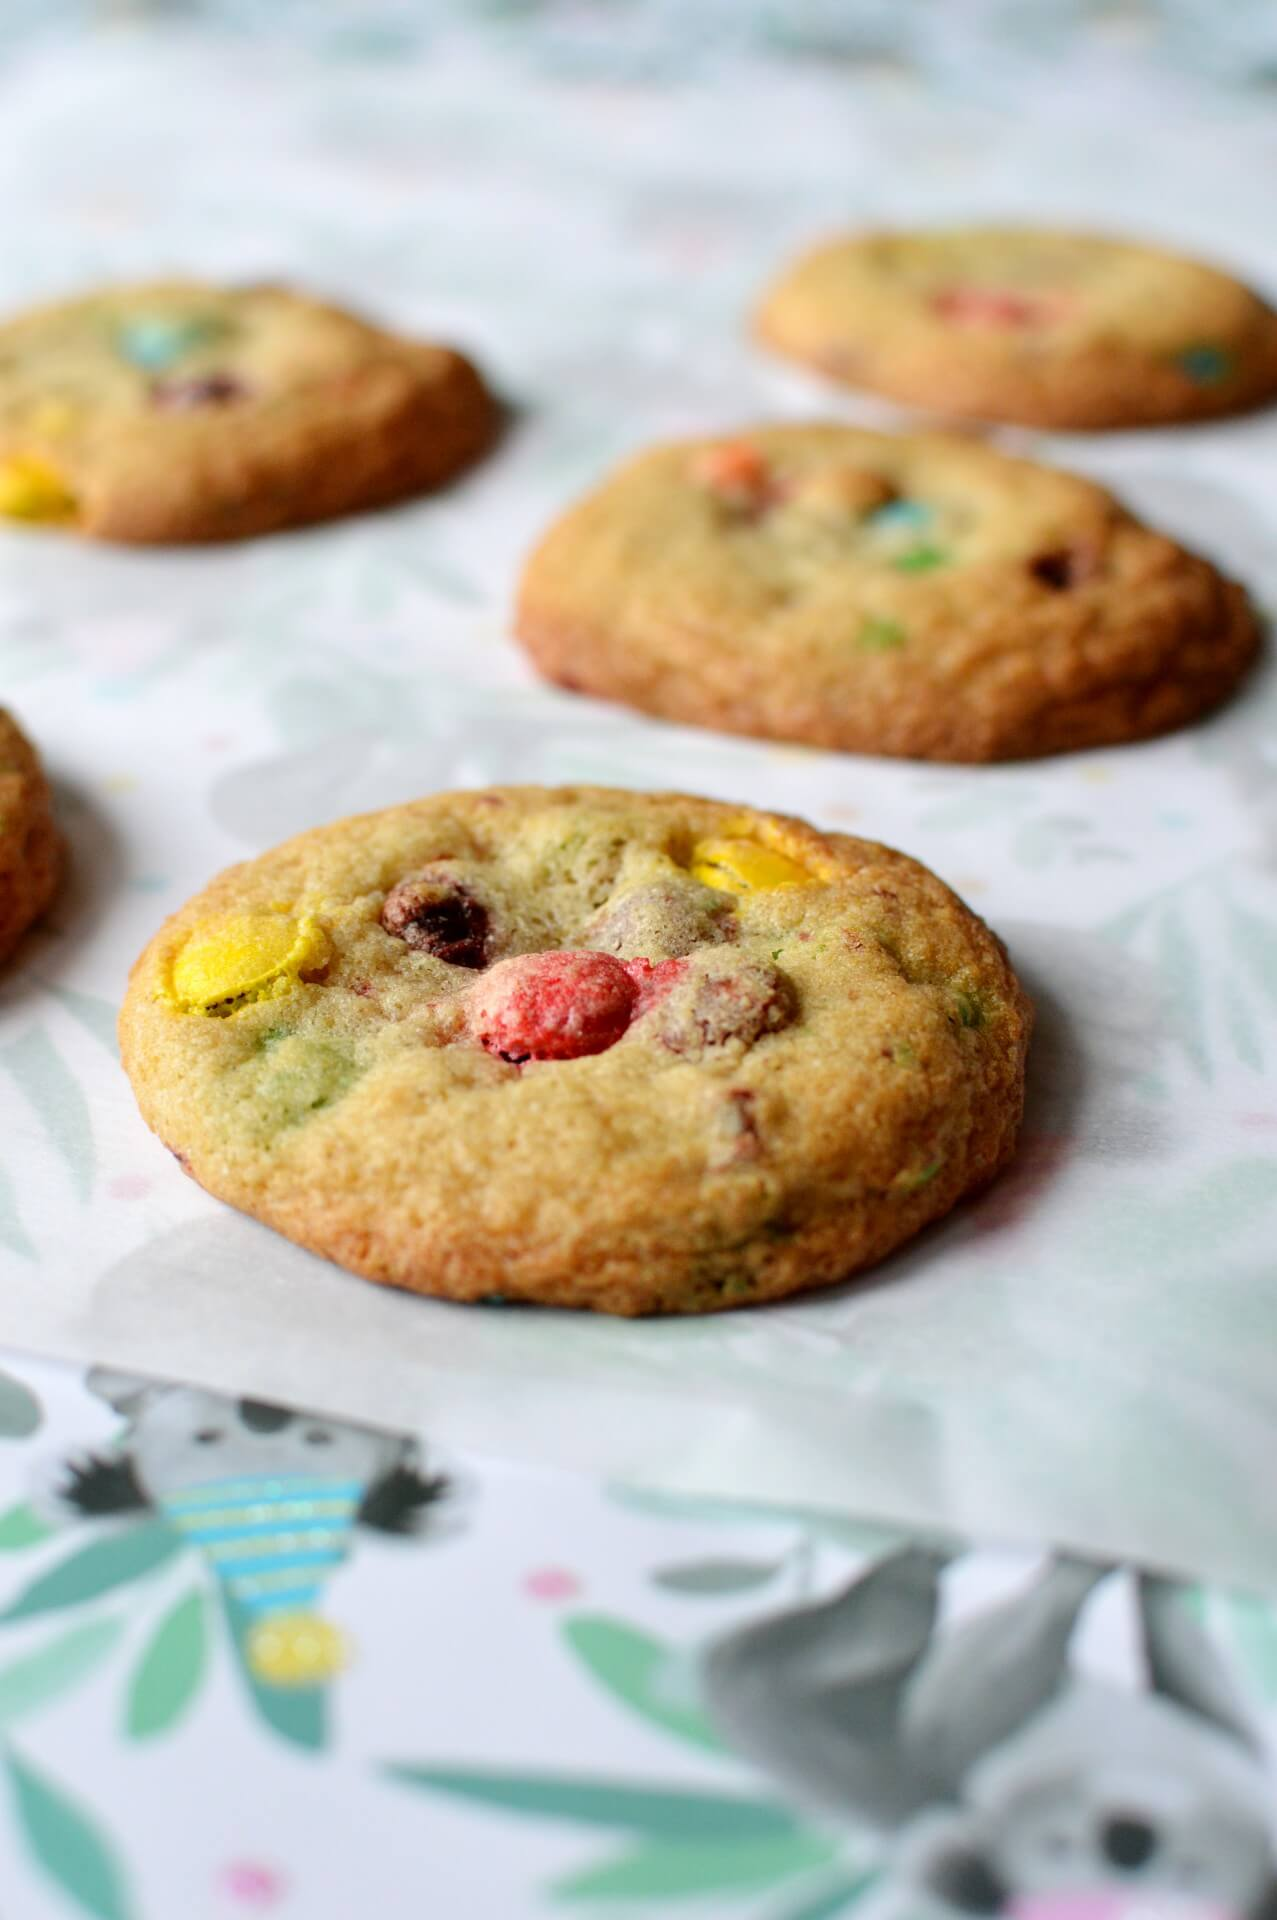 Five gluten free M&M cookies laying on a piece of parchment paper.